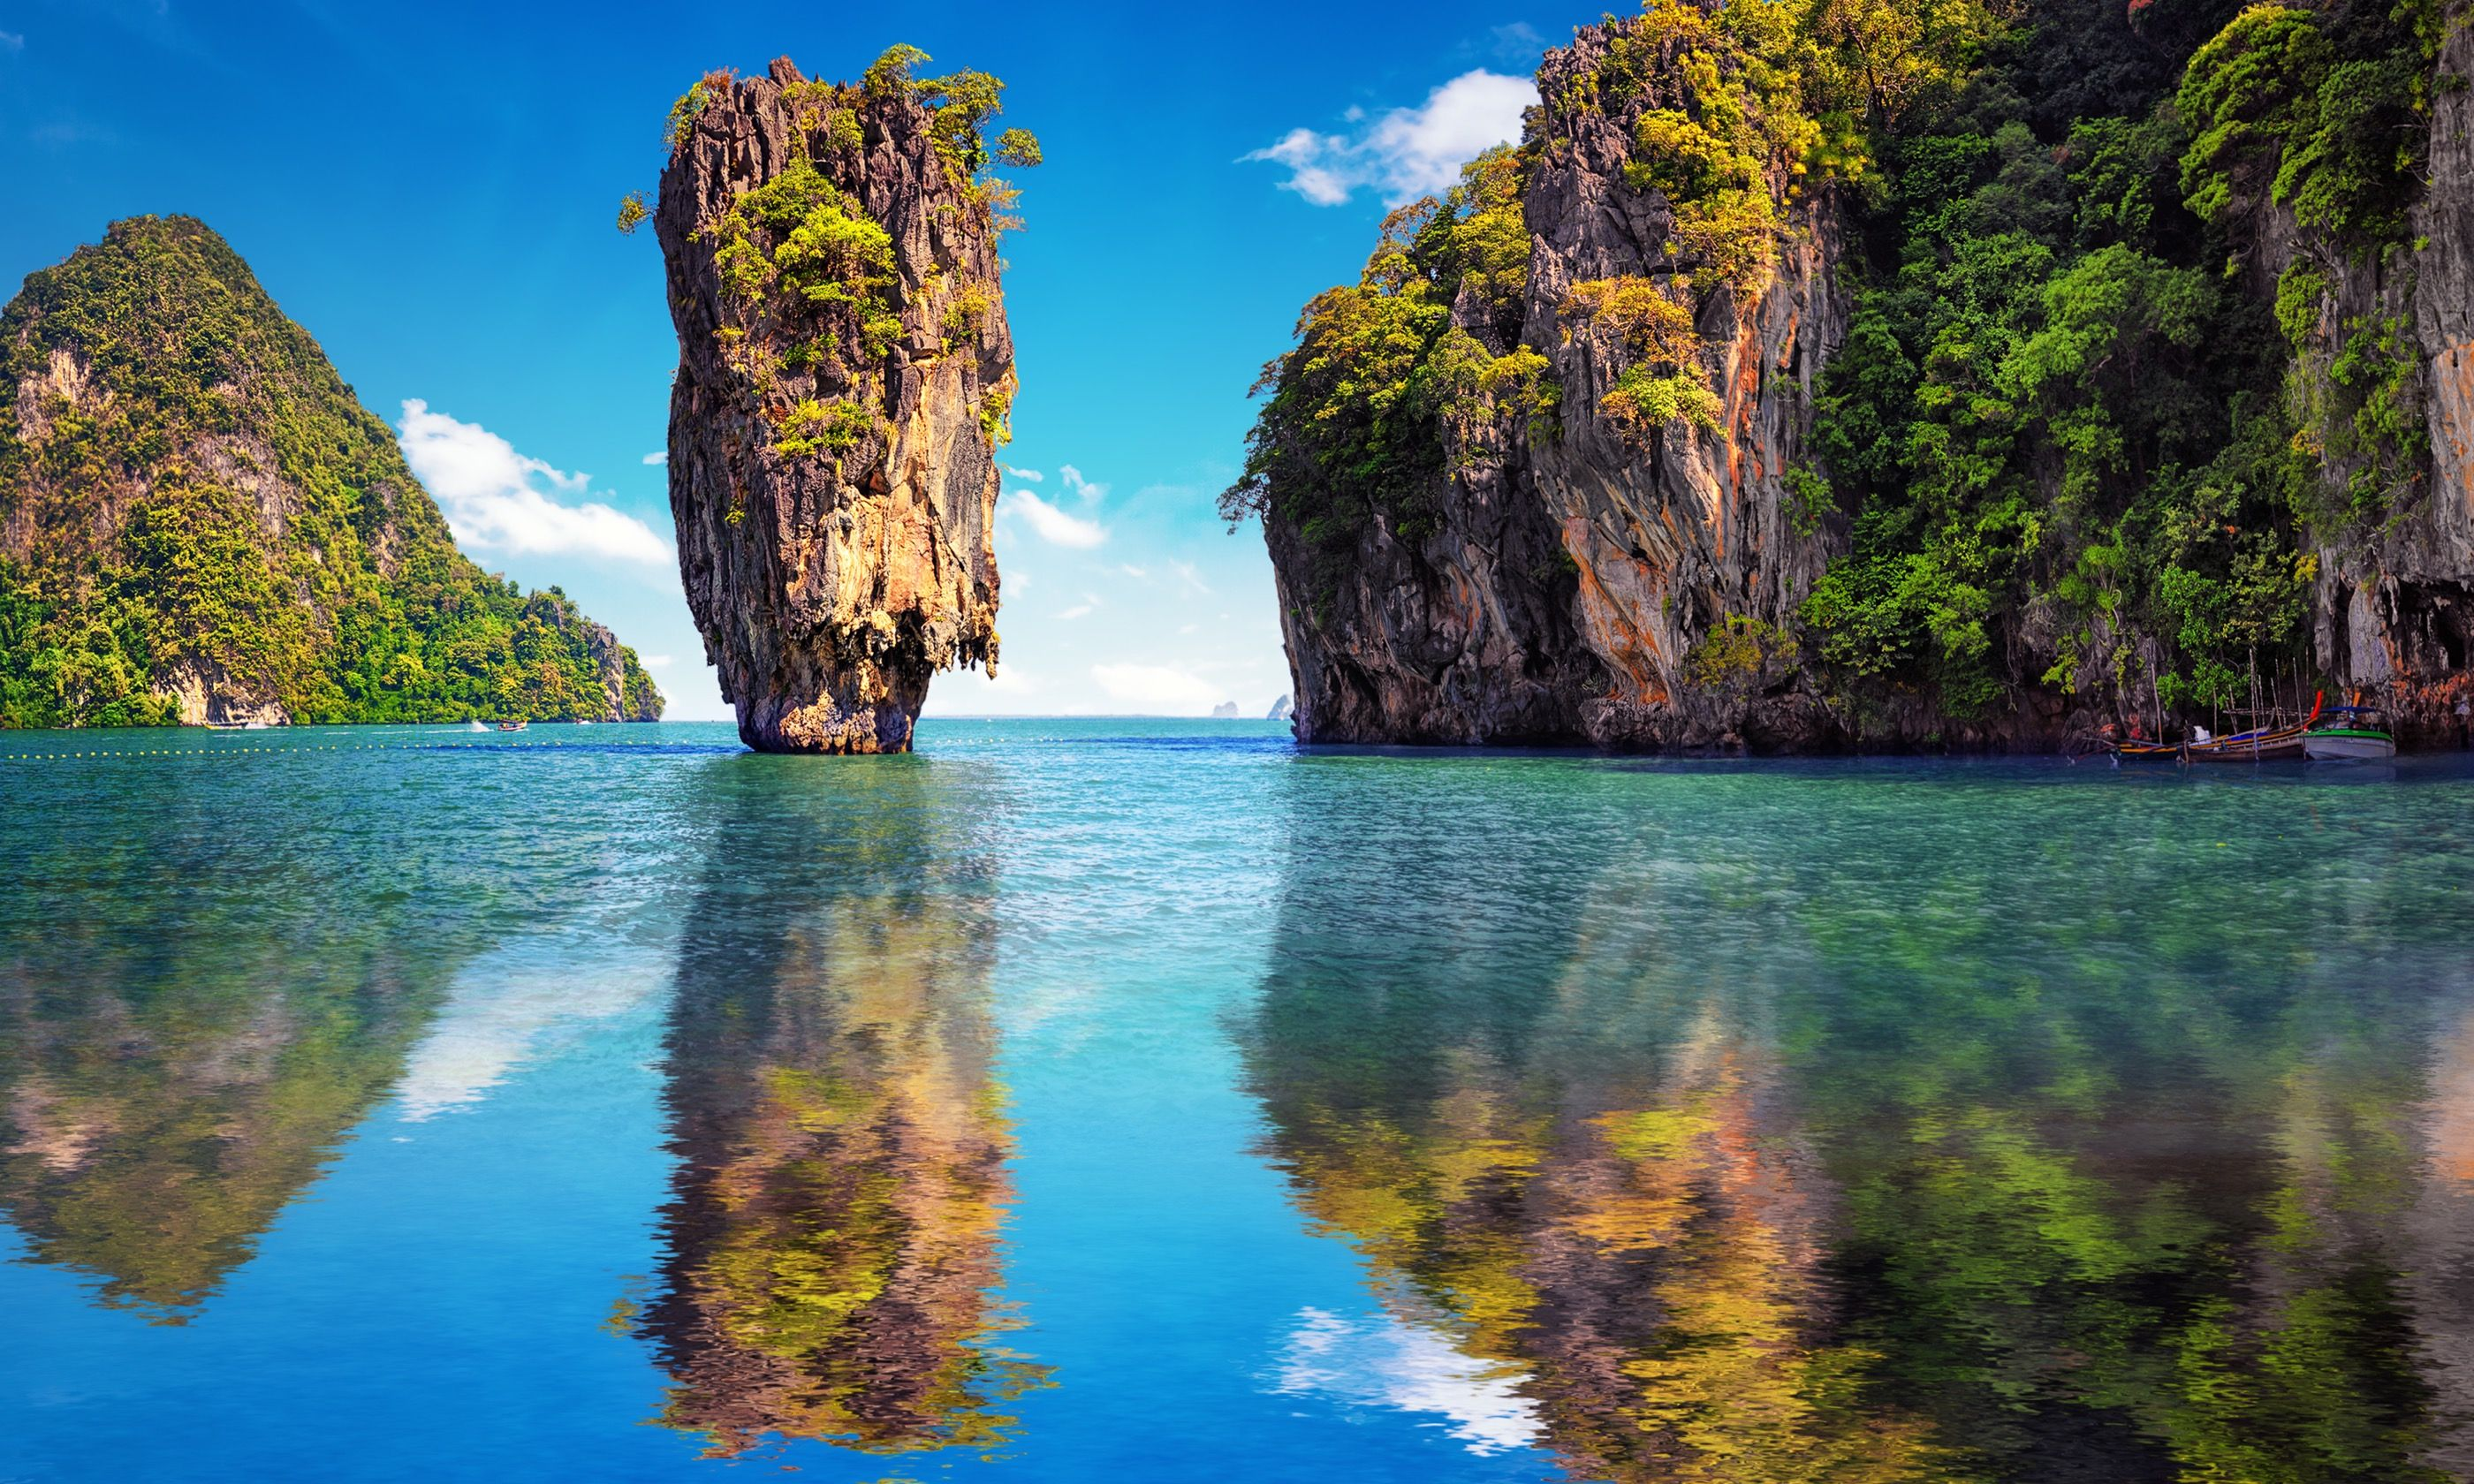 Reflections on James Bond Island (Dreamstime)